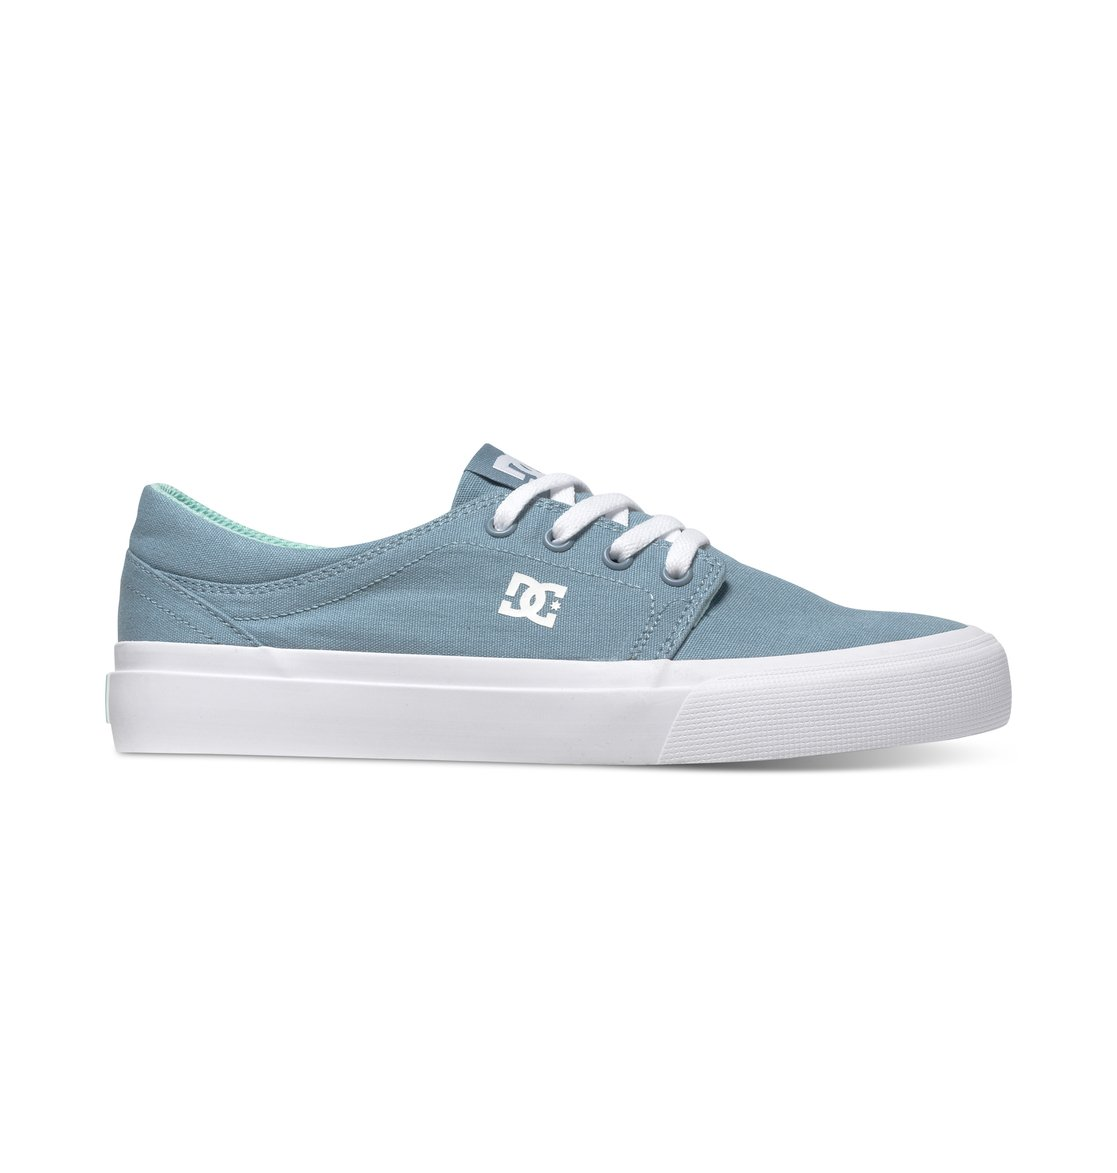 http://static.quiksilver.com/www/store.quiksilver.eu/html/images/catalogs/global/dcshoes-products/all/default/hi-res/adjs300078_trasetx,p_nab_frt2.jpg